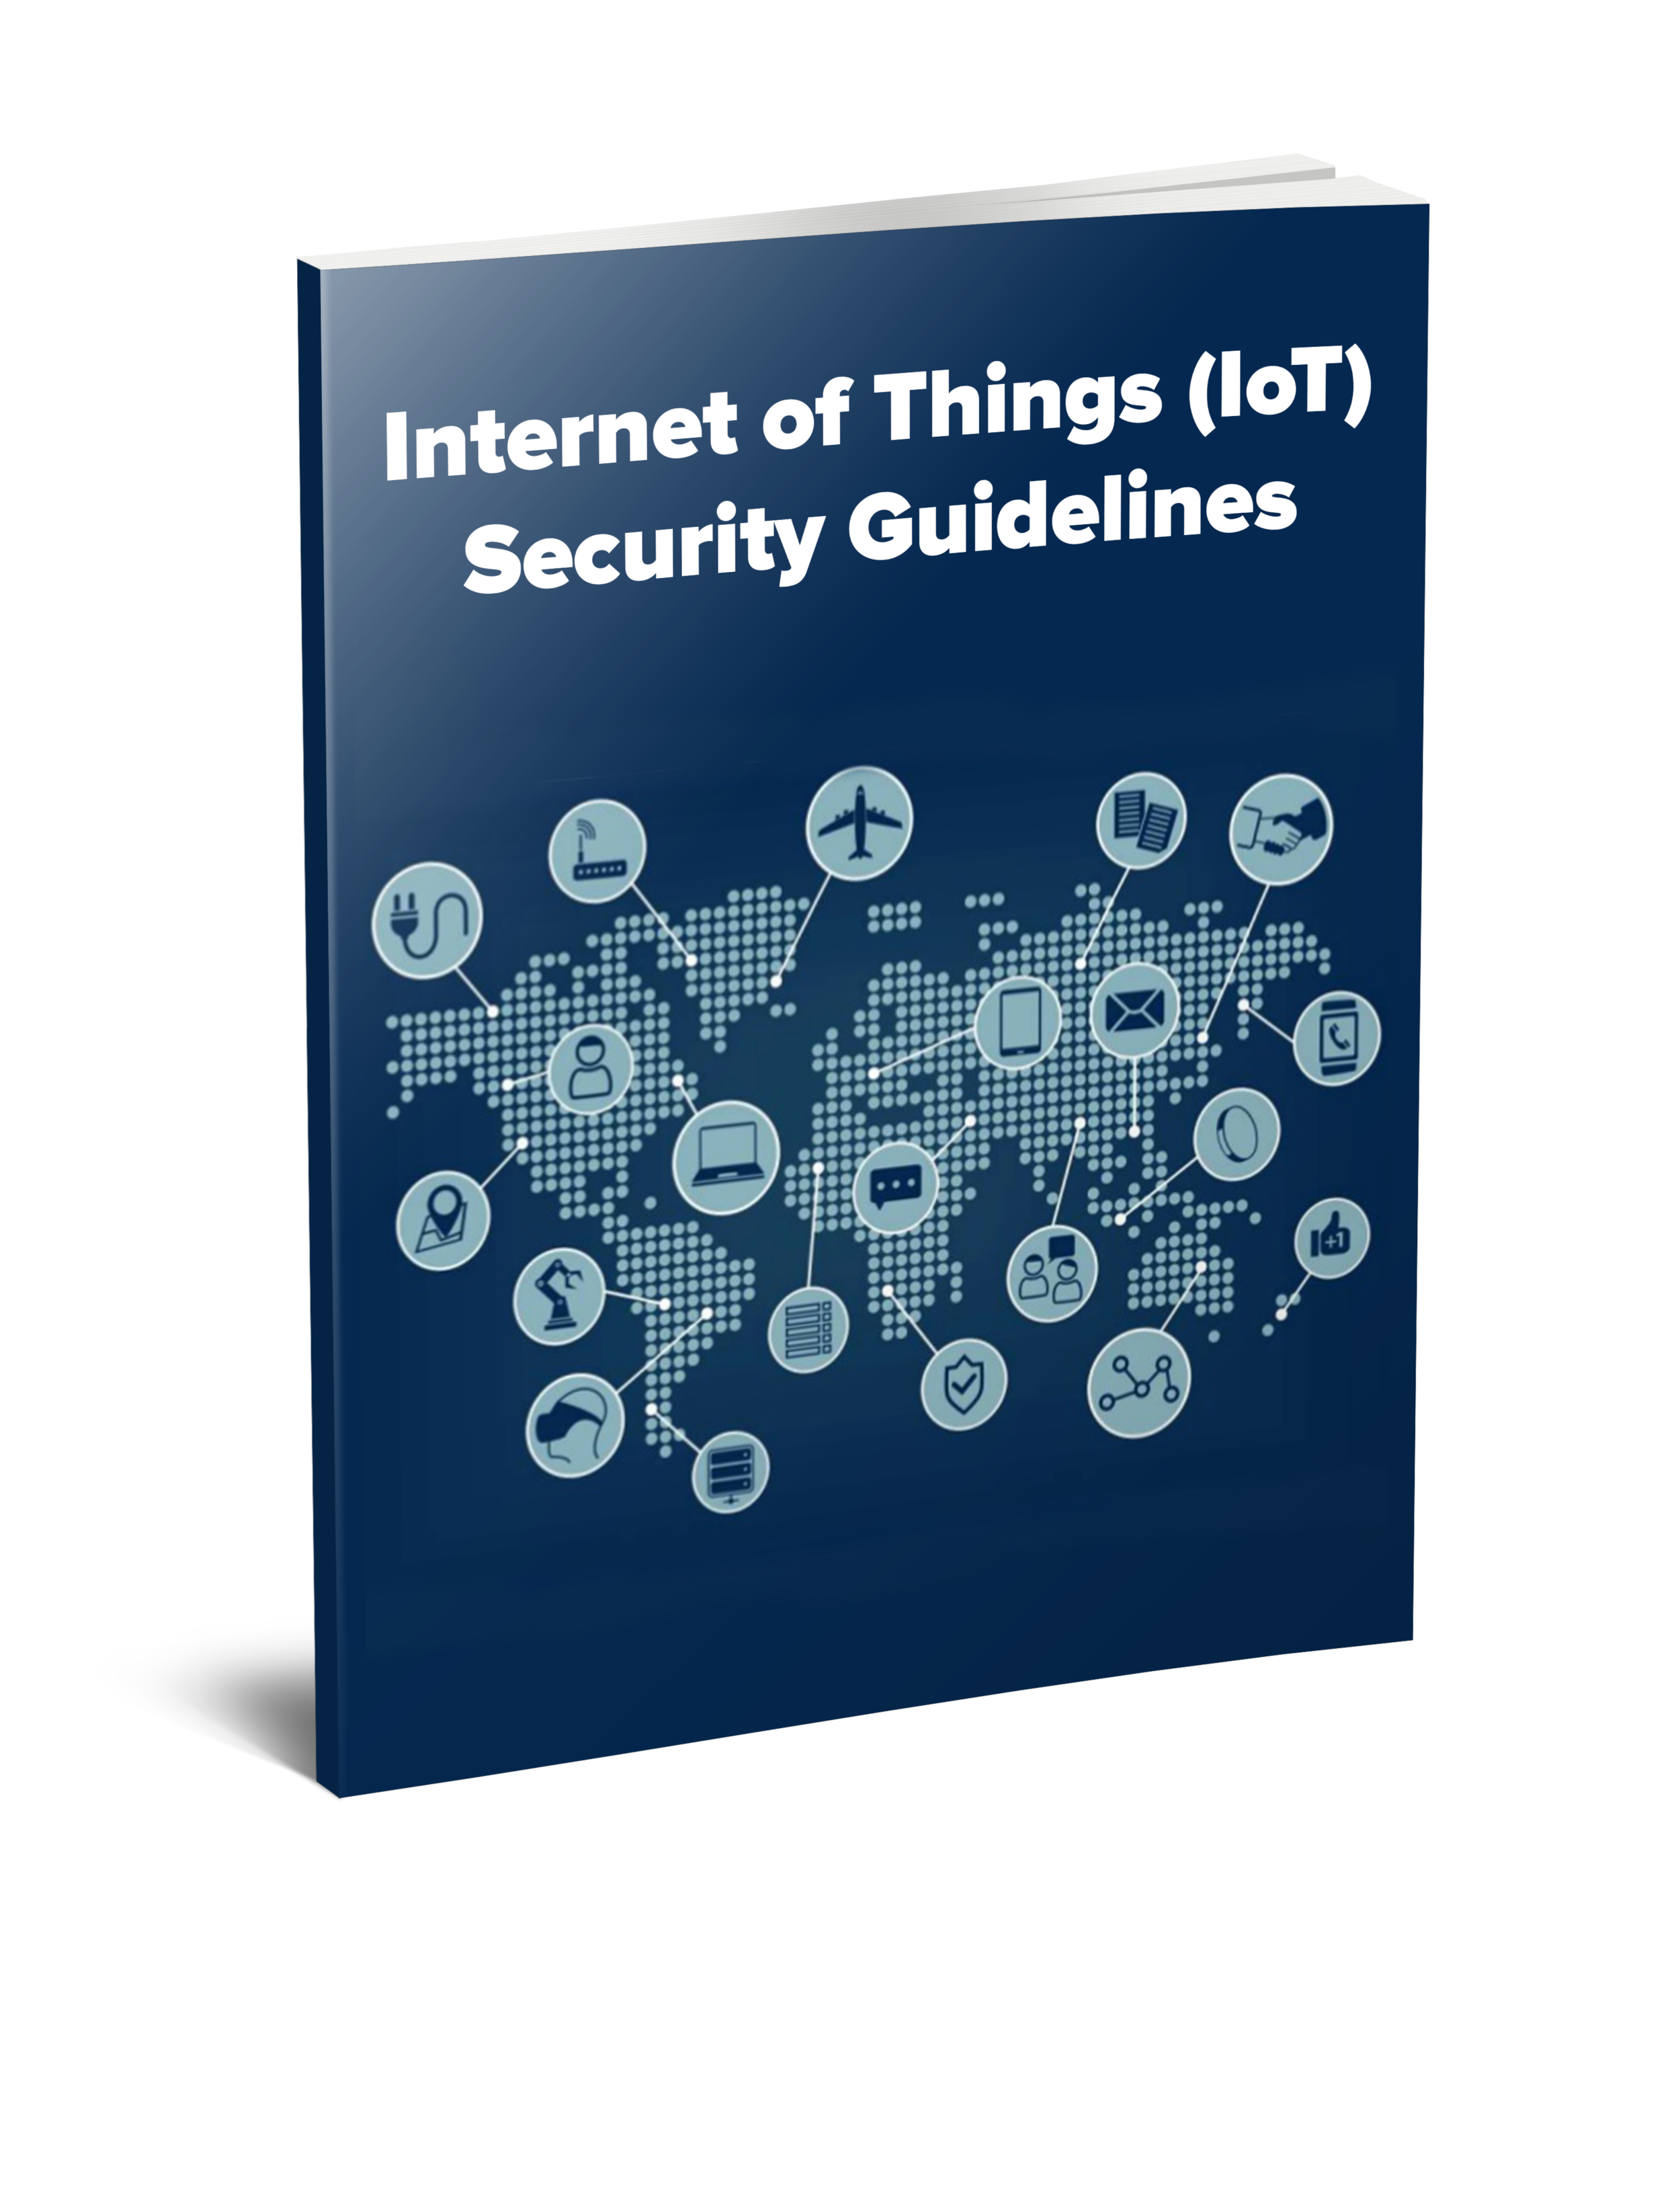 Internet of Things (IoT) Security Guidelines